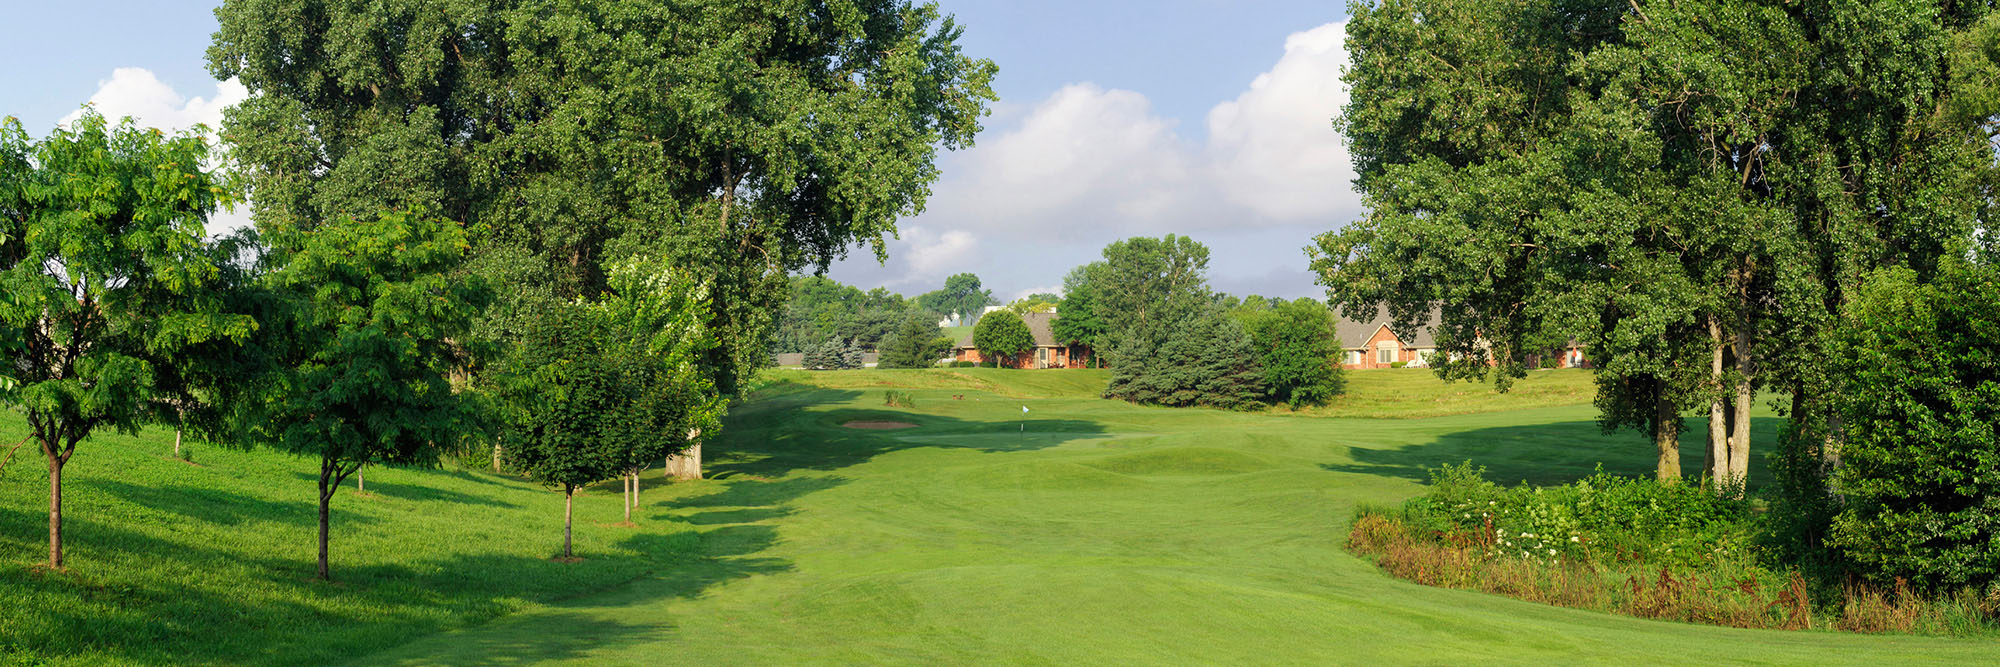 Golf Course Image - Pacific Springs No. 5